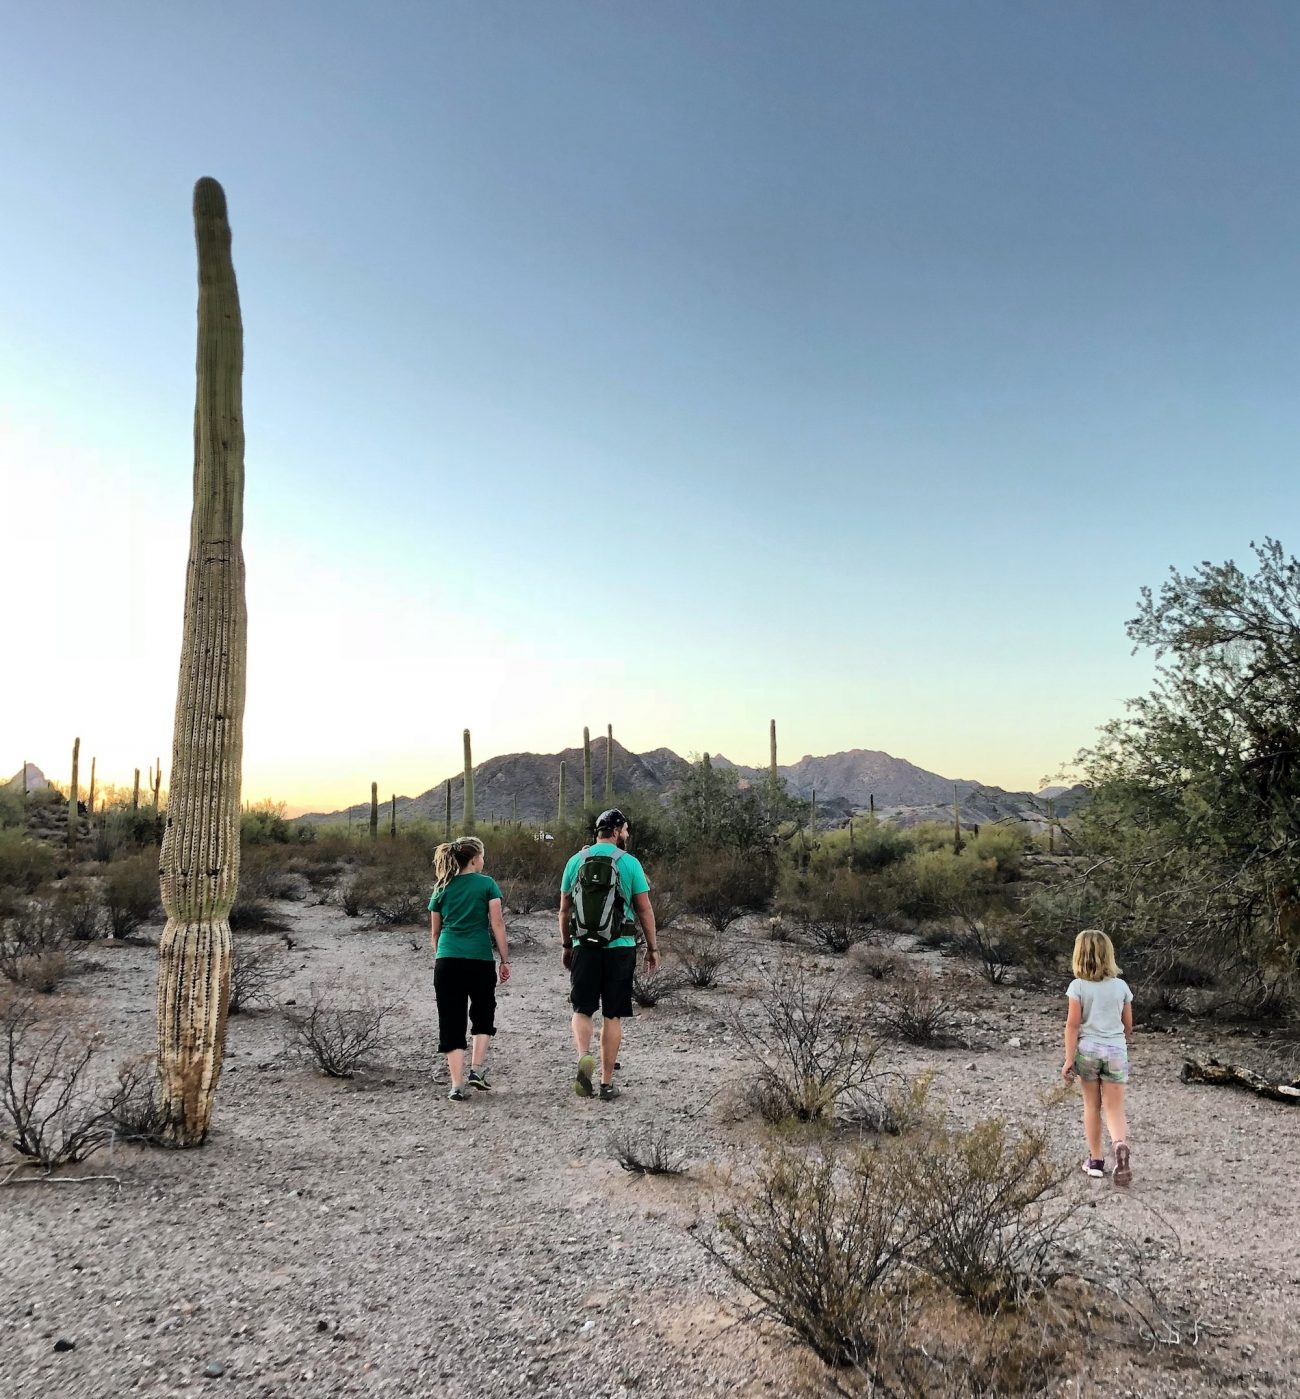 Dad and kids hiking in desert